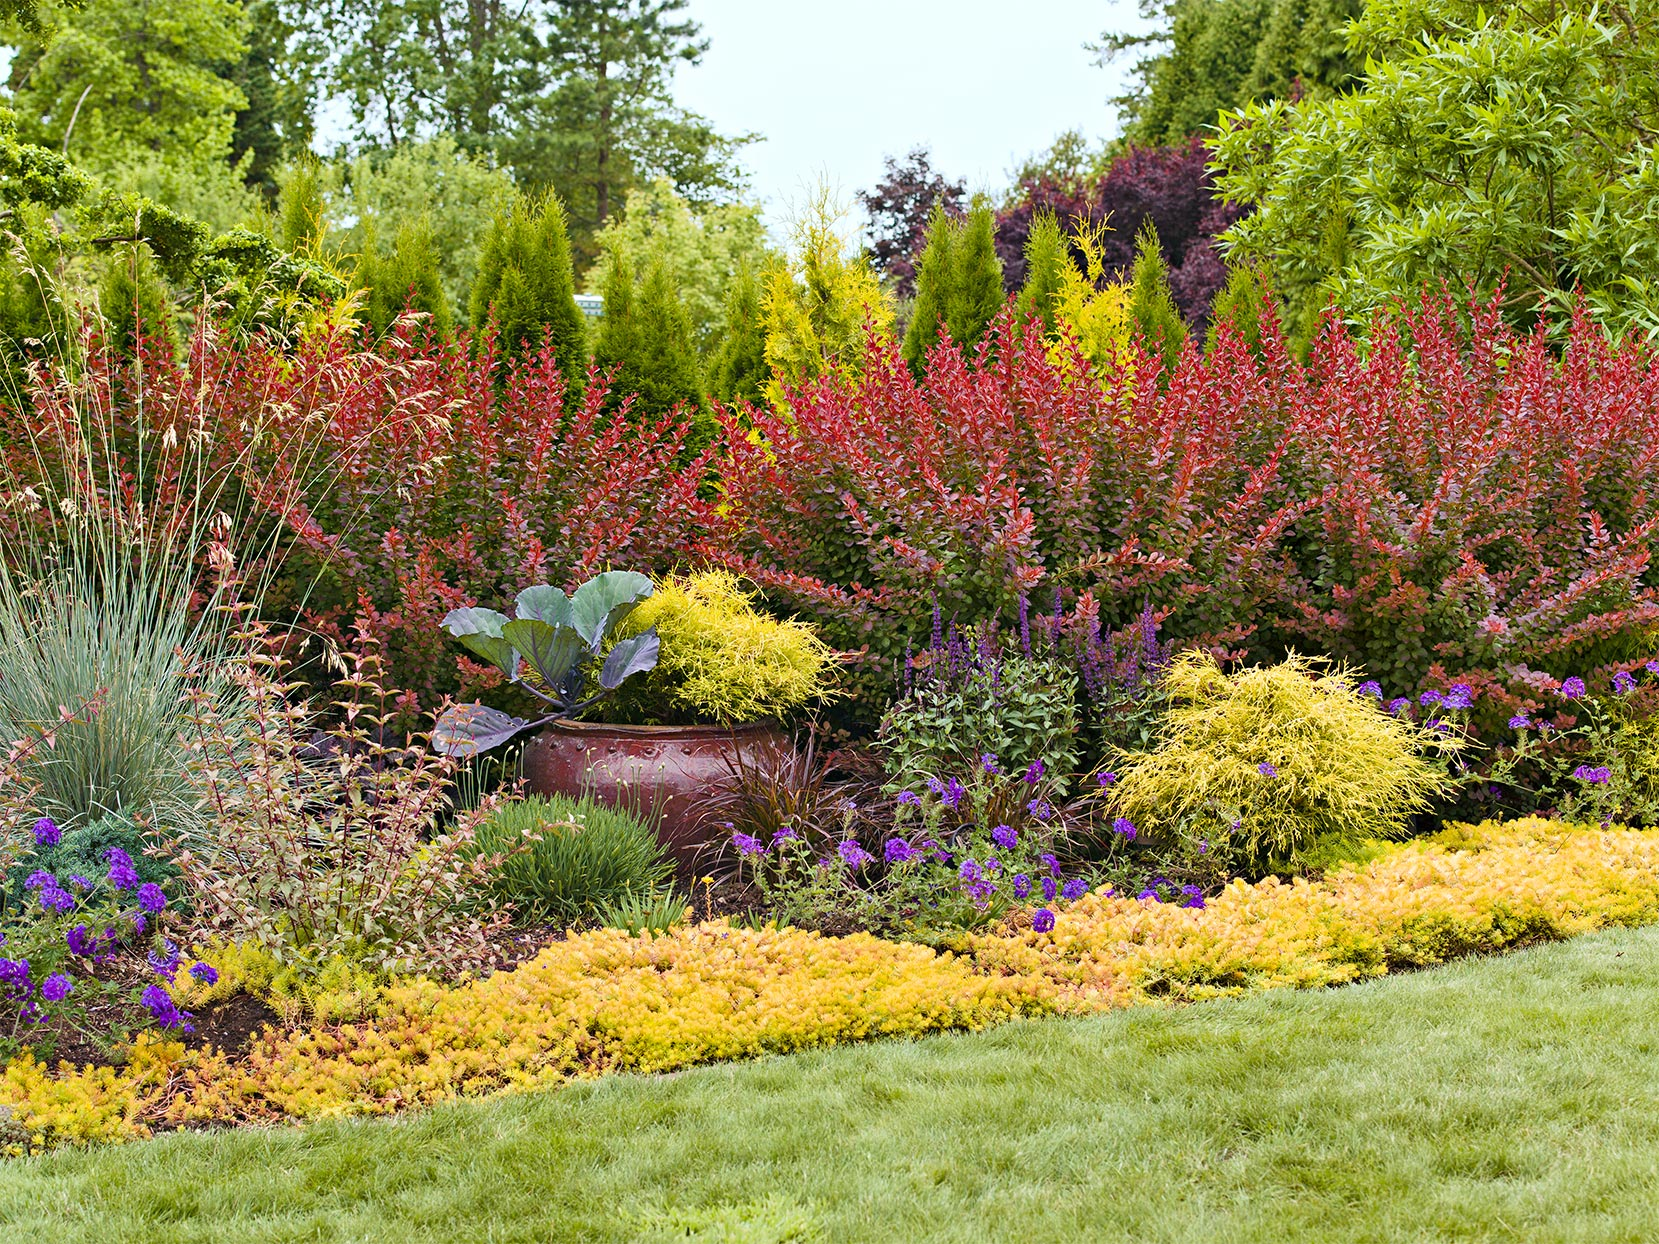 multiple-layered garden with pot